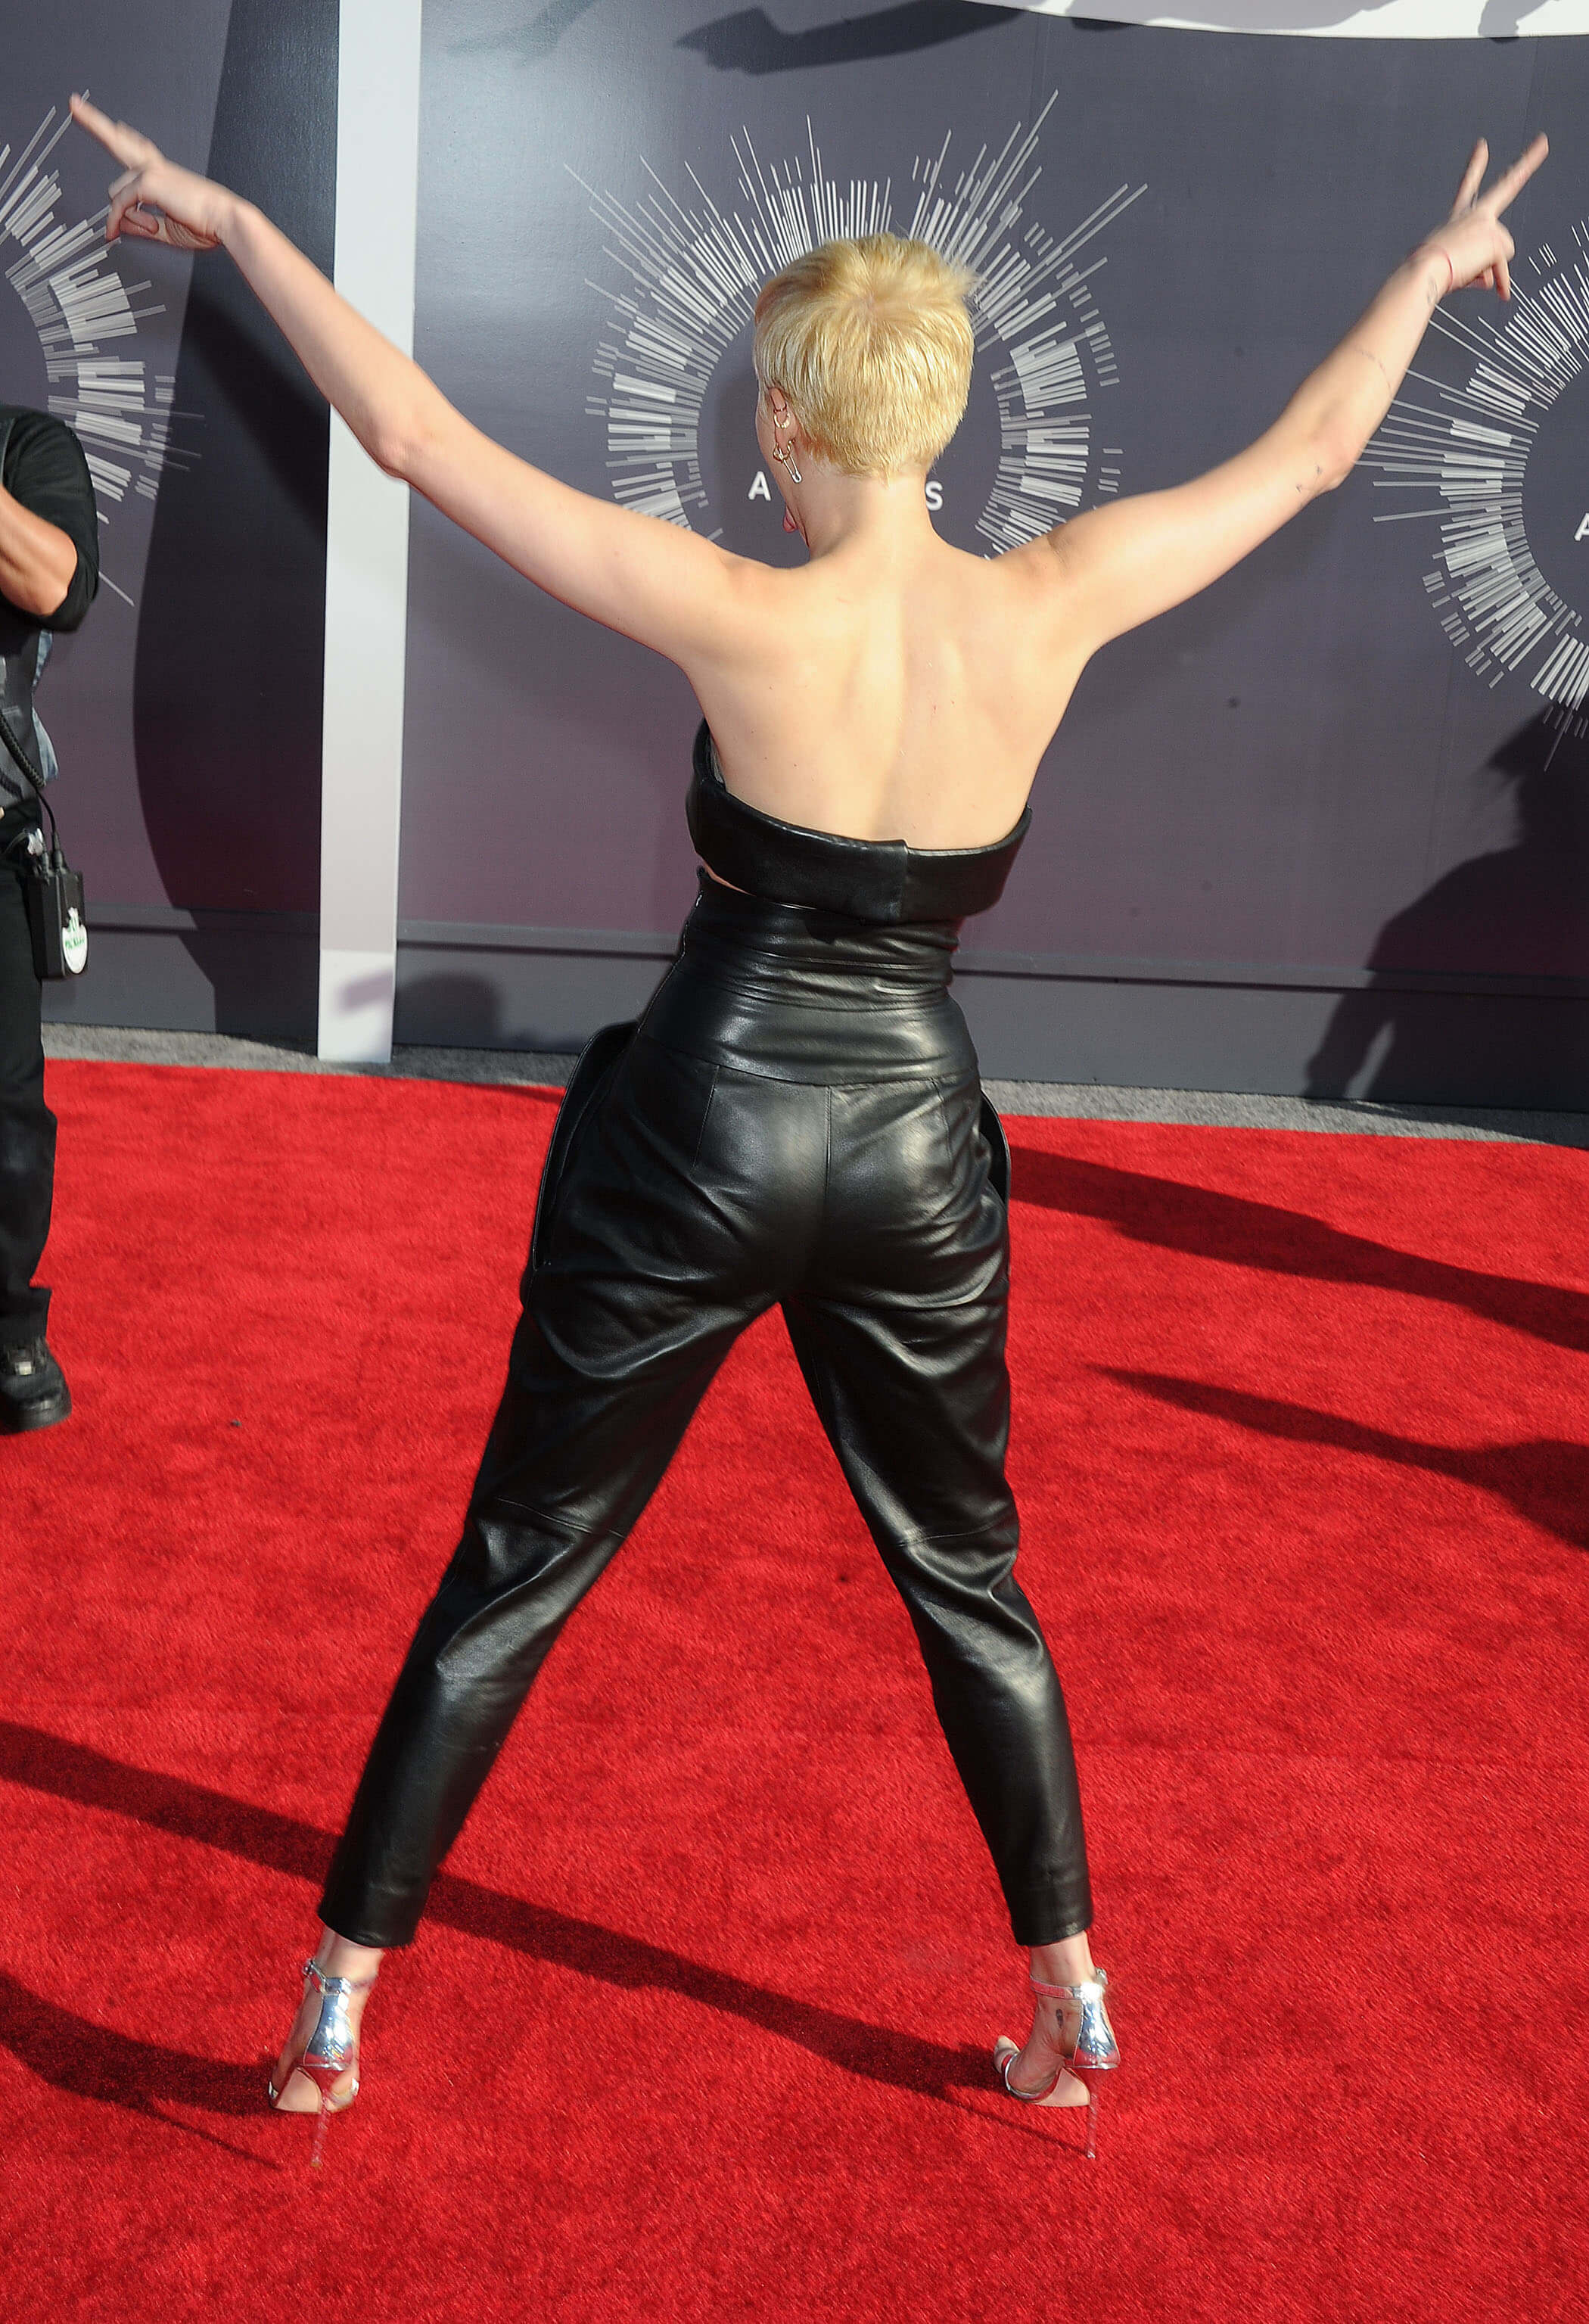 Miley Cyrus awesome pic